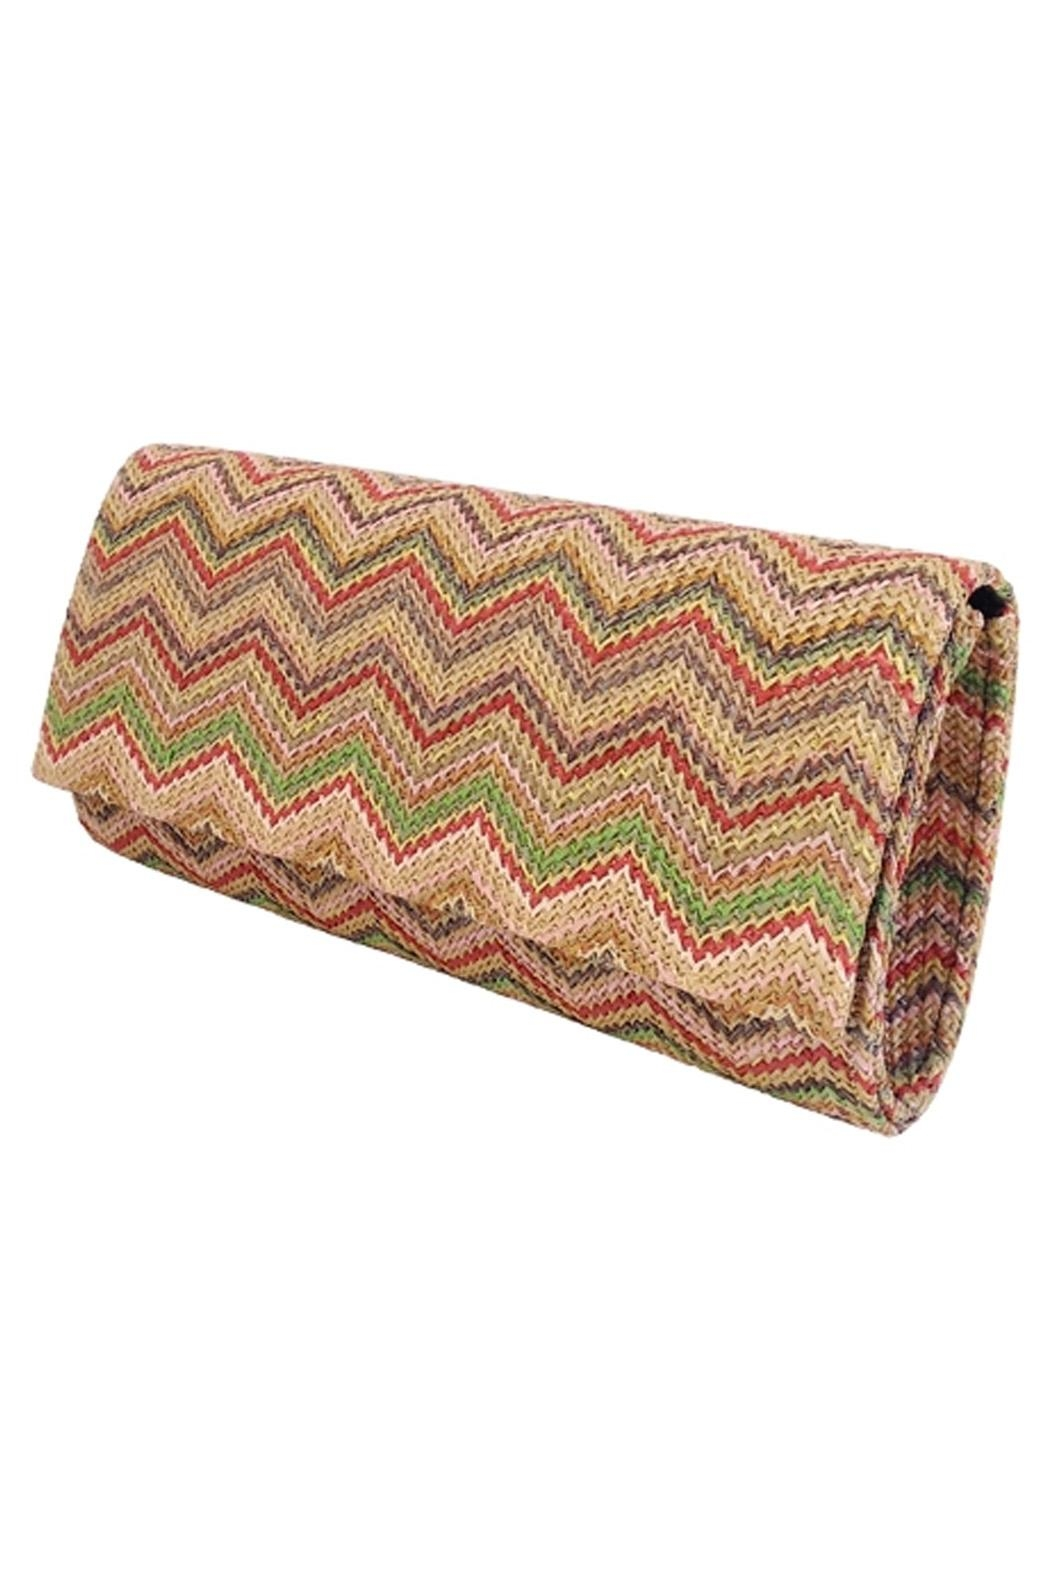 Wild Lilies Jewelry  Chevron Envelope Clutch - Front Full Image